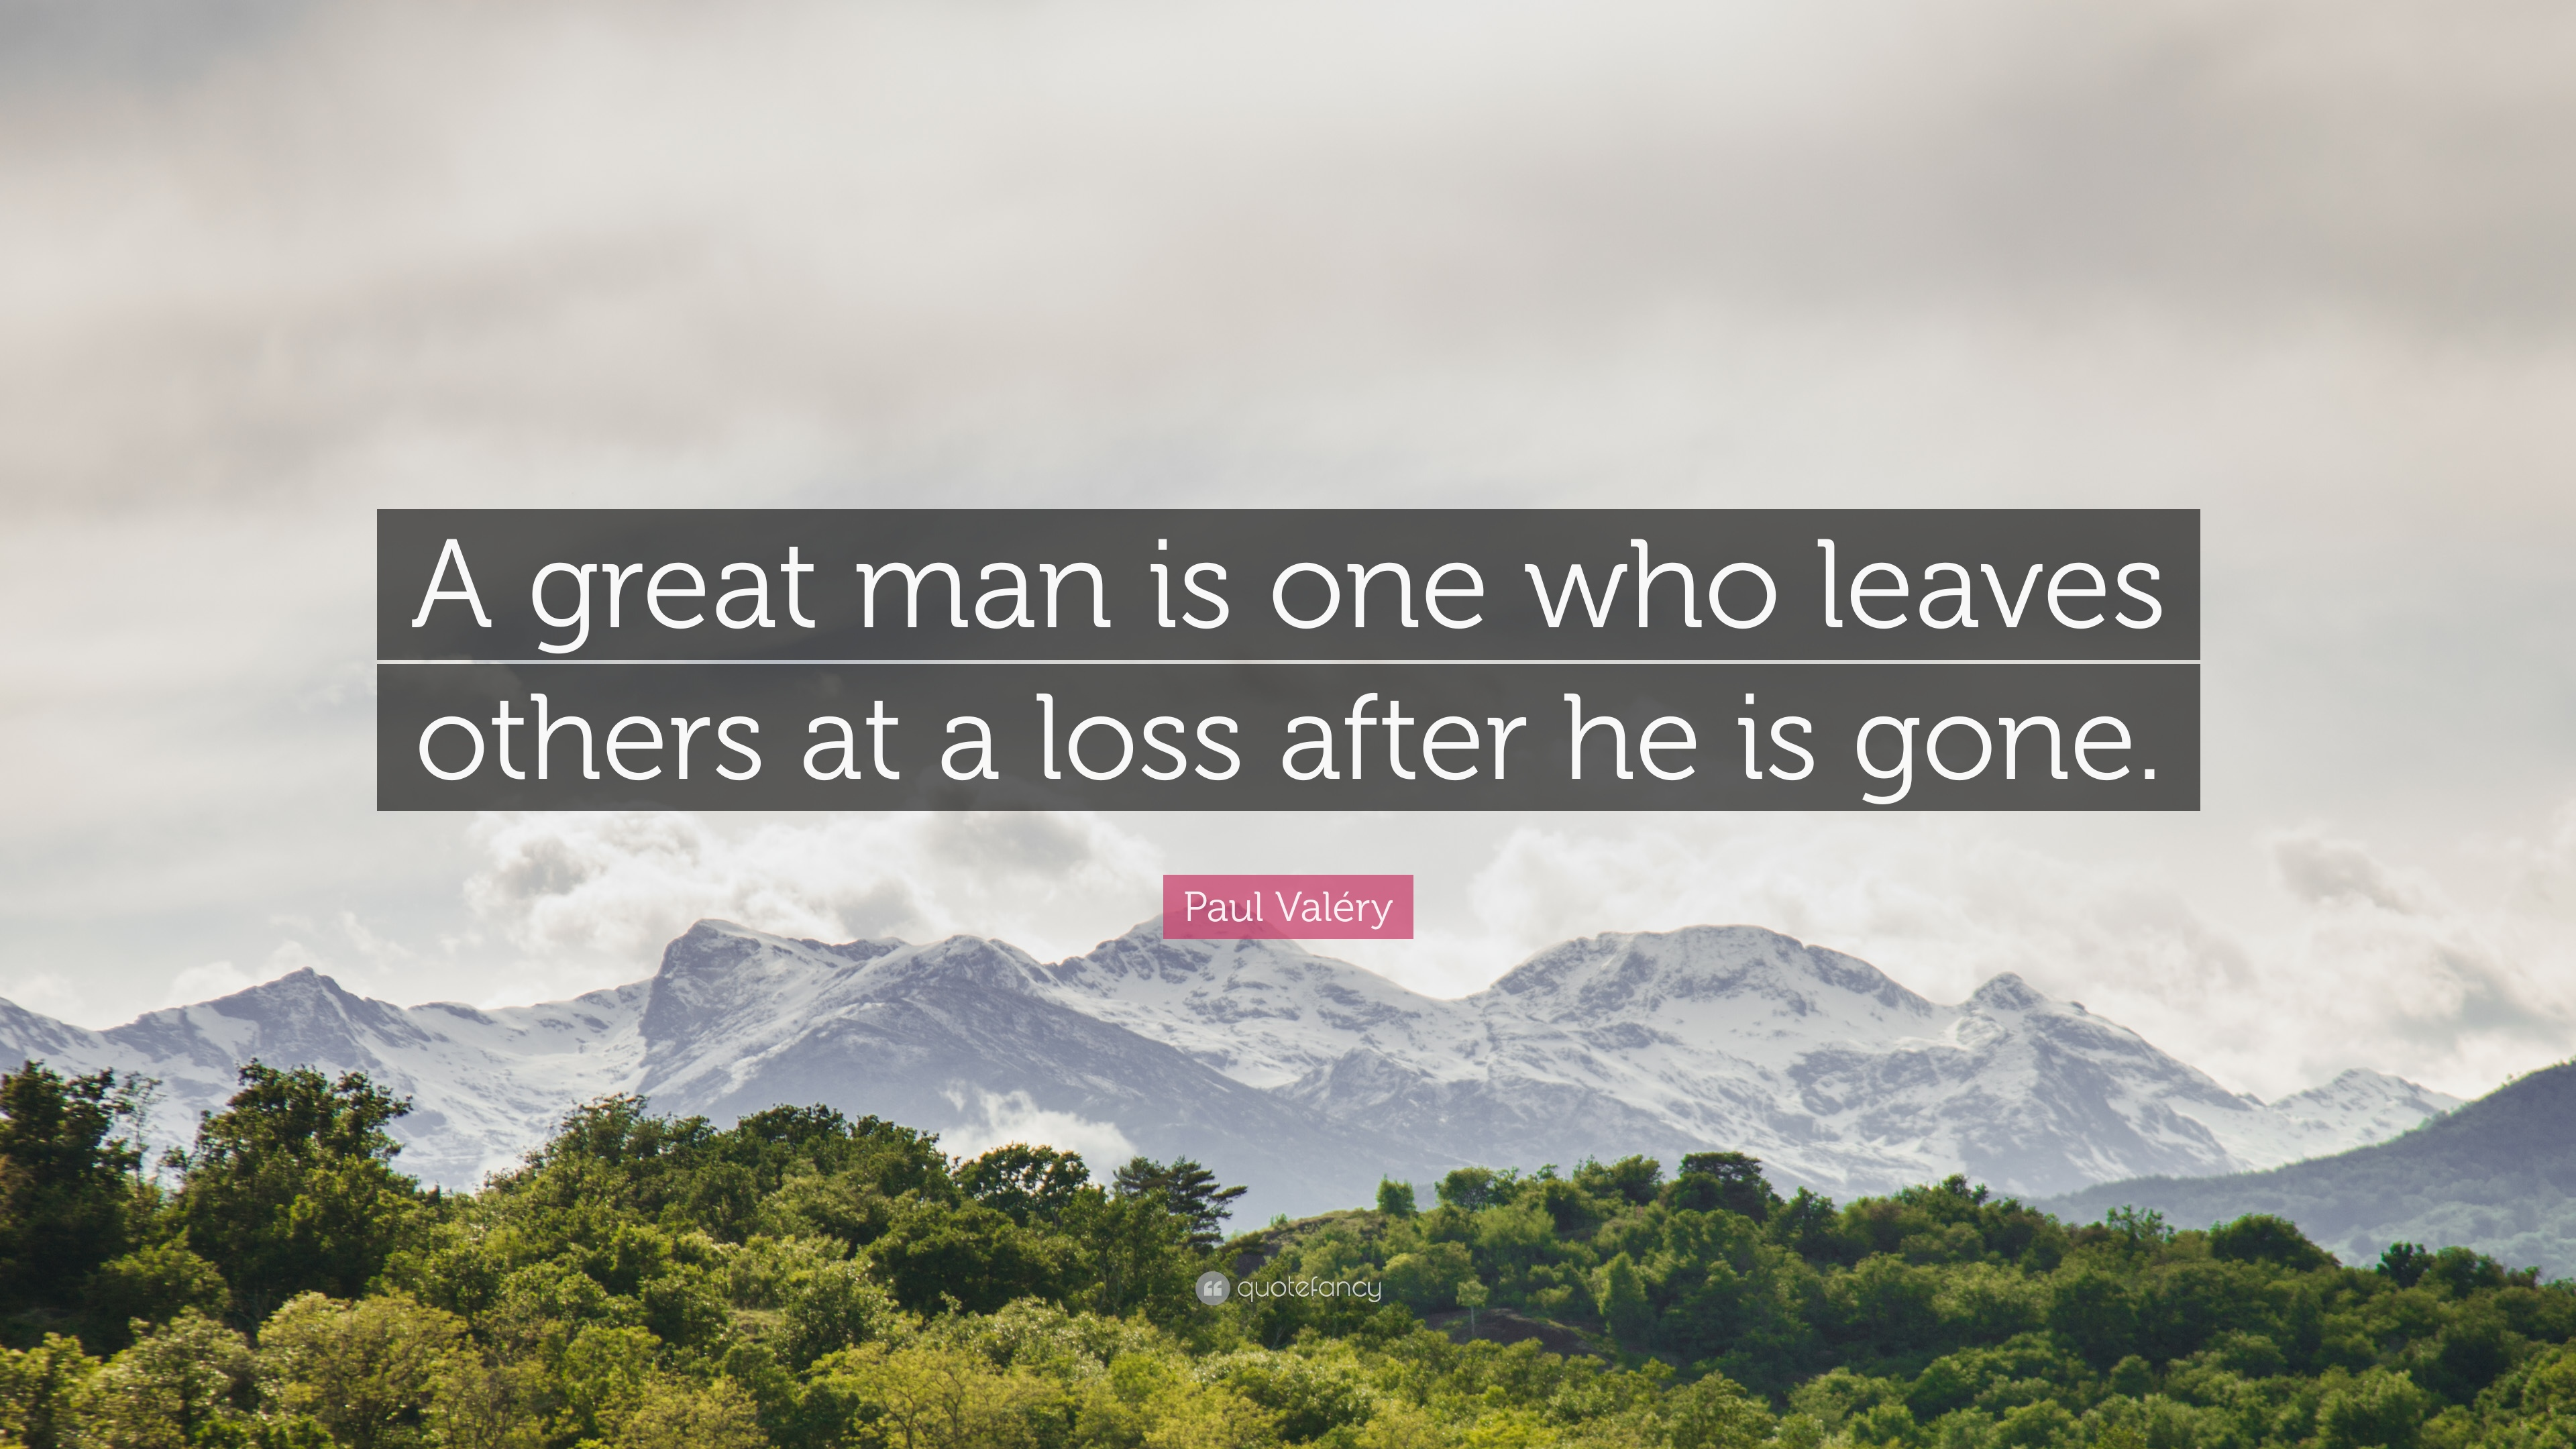 Paul Valéry Quote A Great Man Is One Who Leaves Others At A Loss